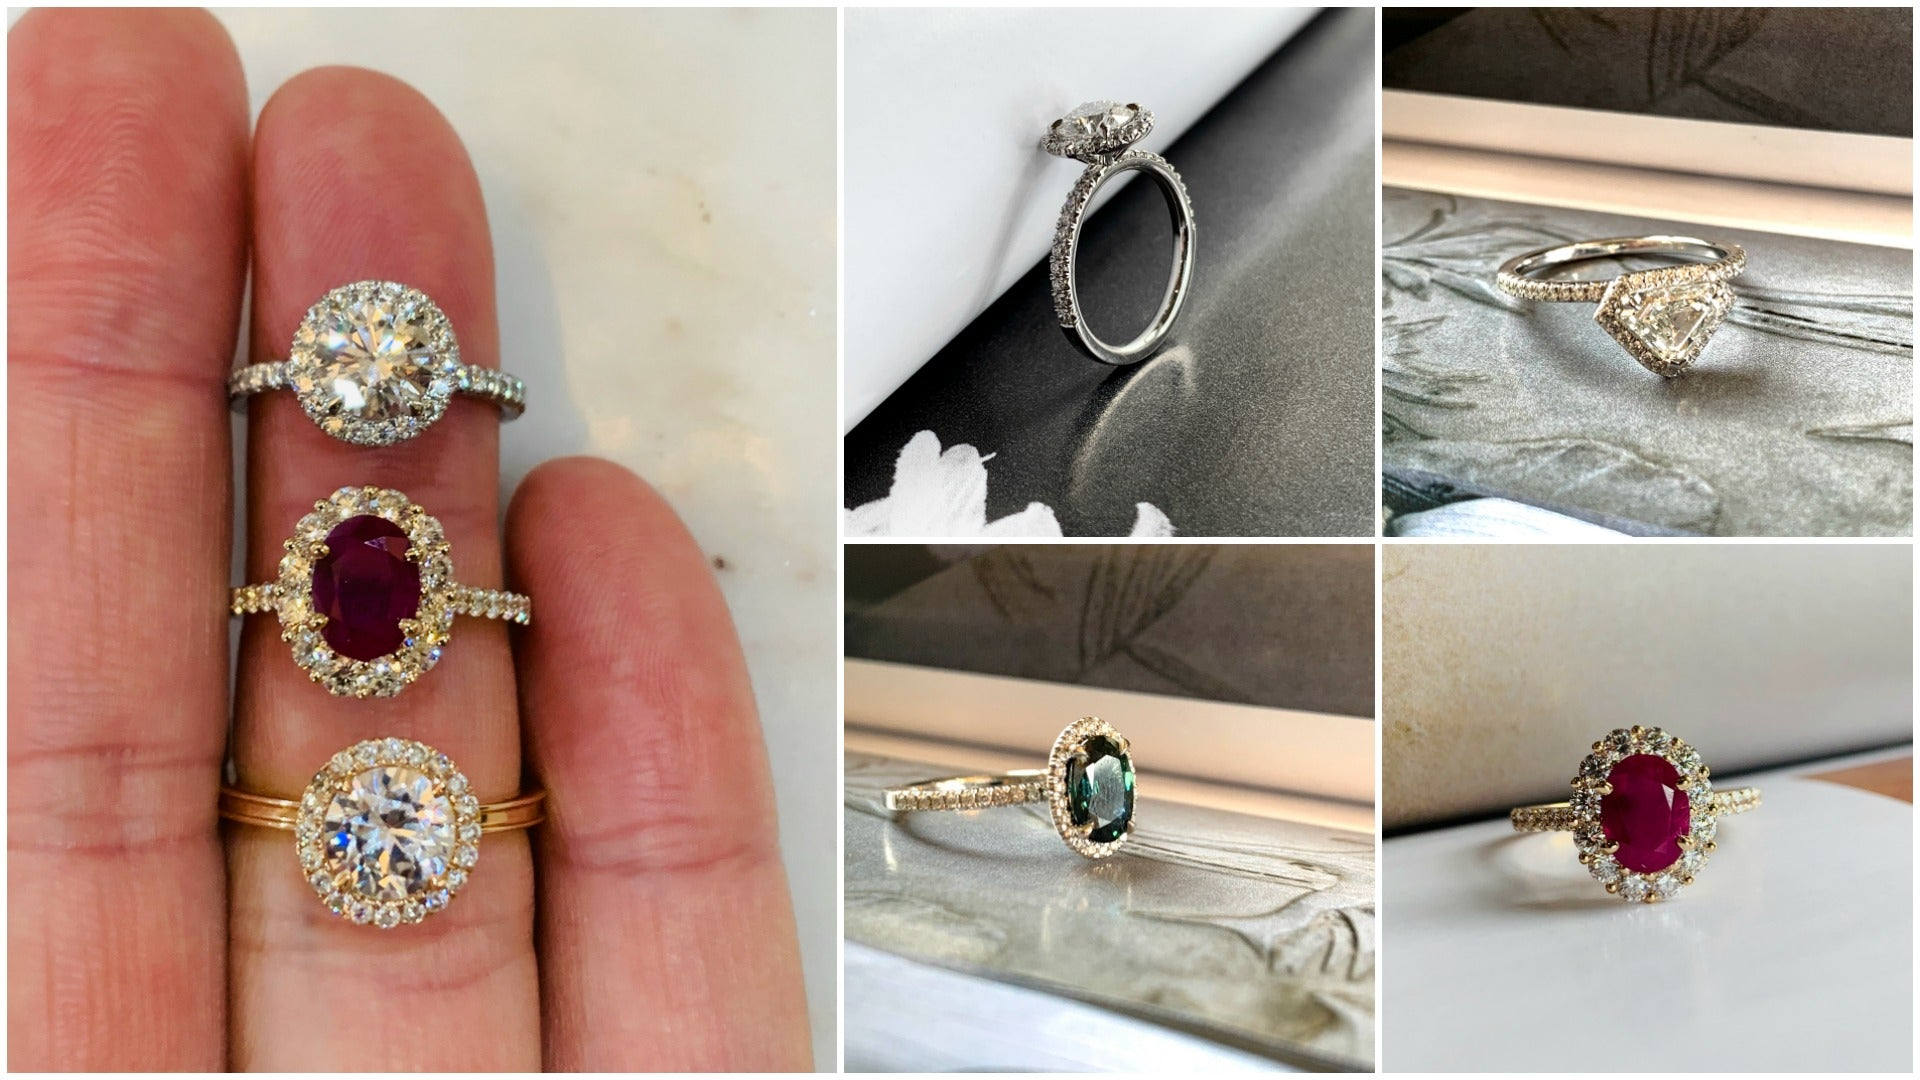 Halo Engagement Ring Designs - Dana Walden Bridal